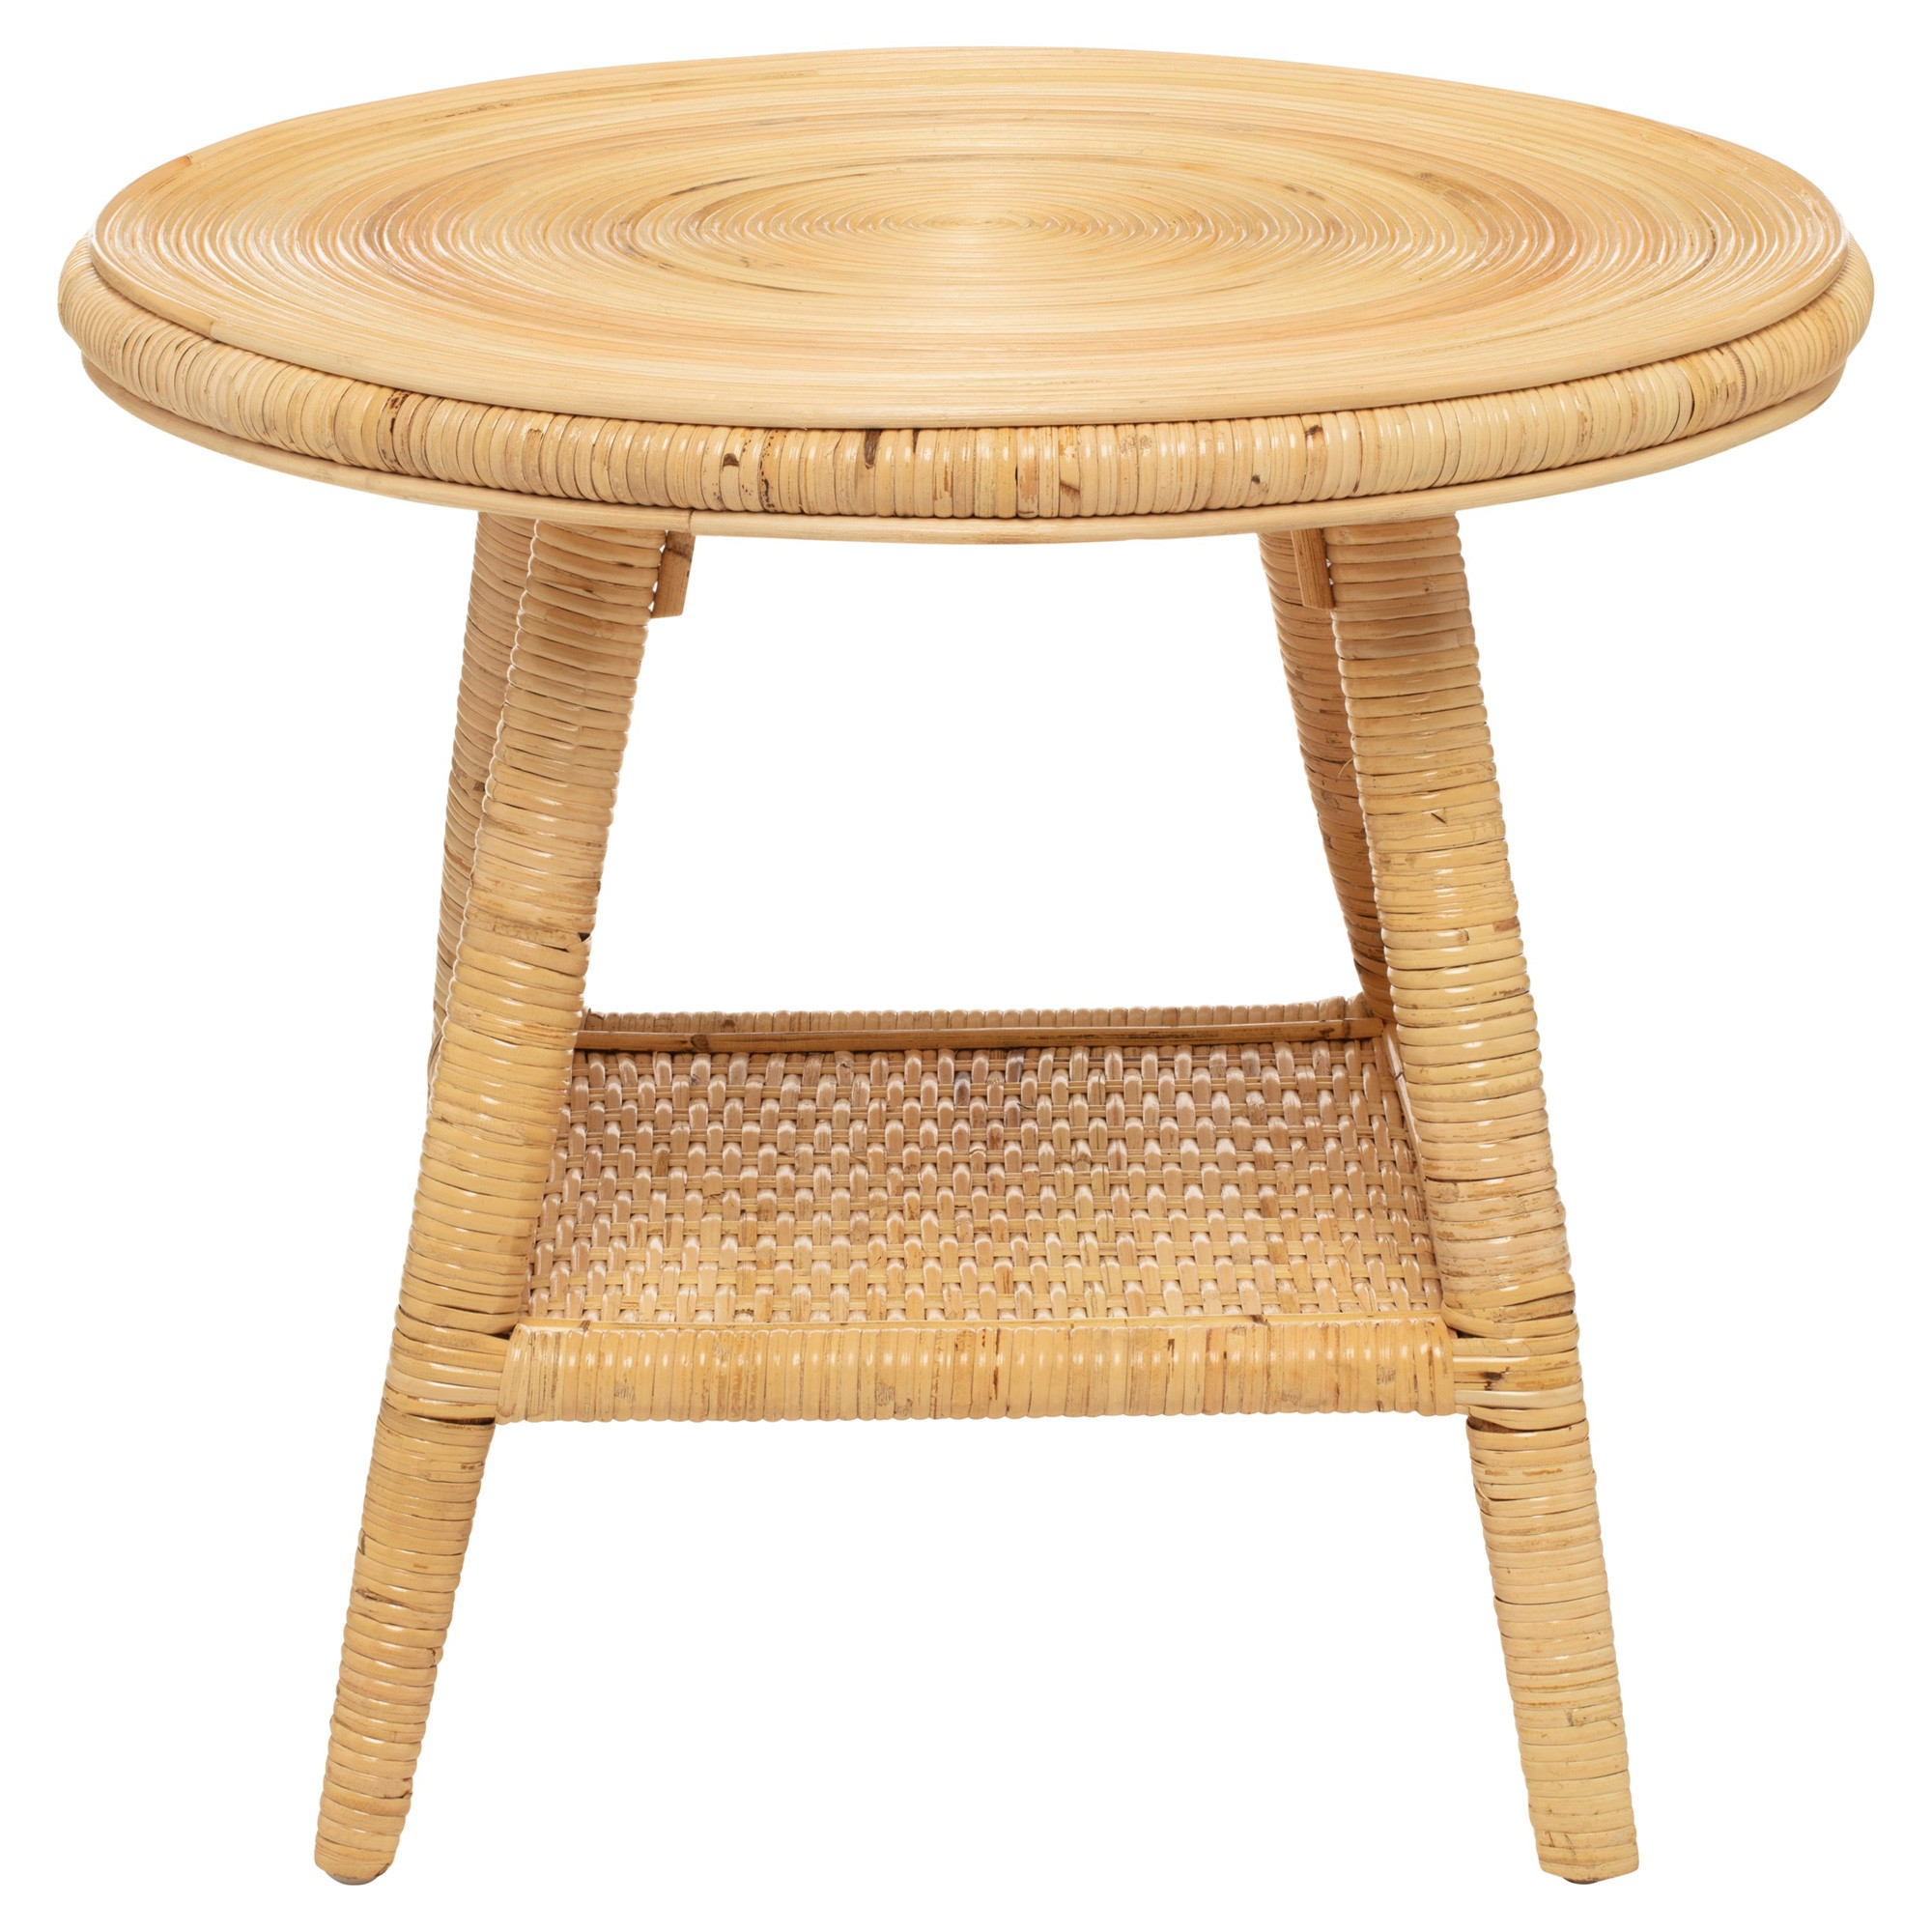 Newport Rattan Round Coffee Table, 58cm